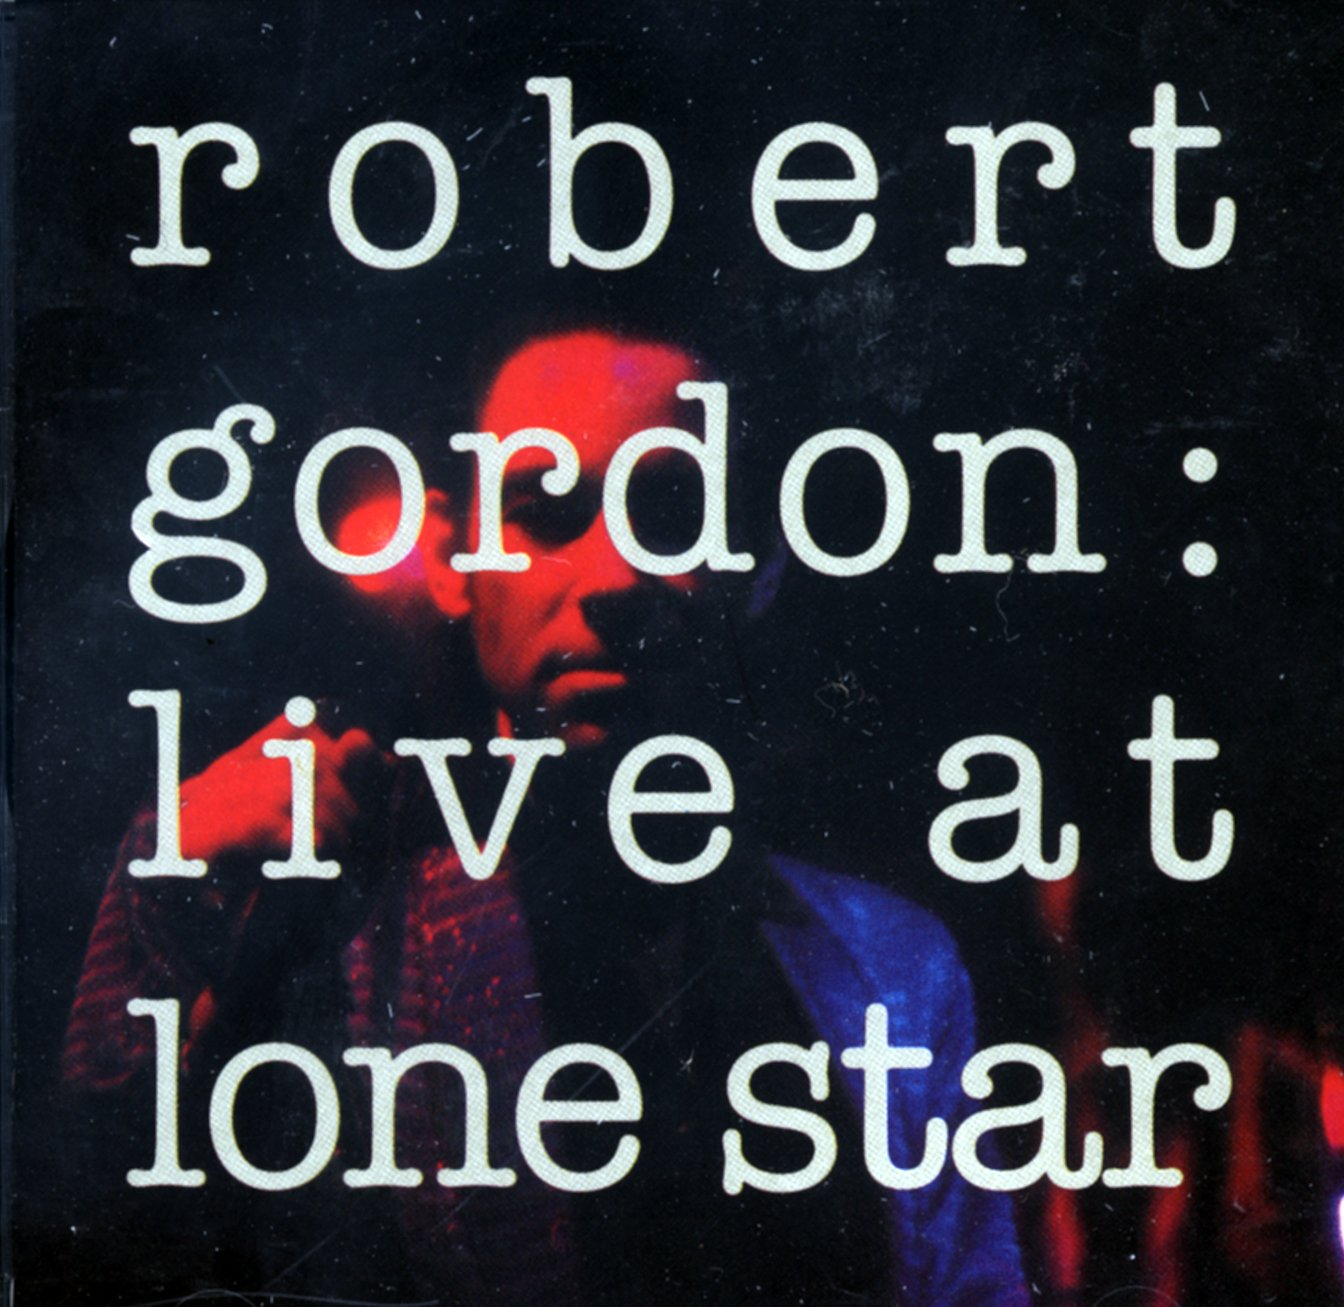 Live at the Lone Star